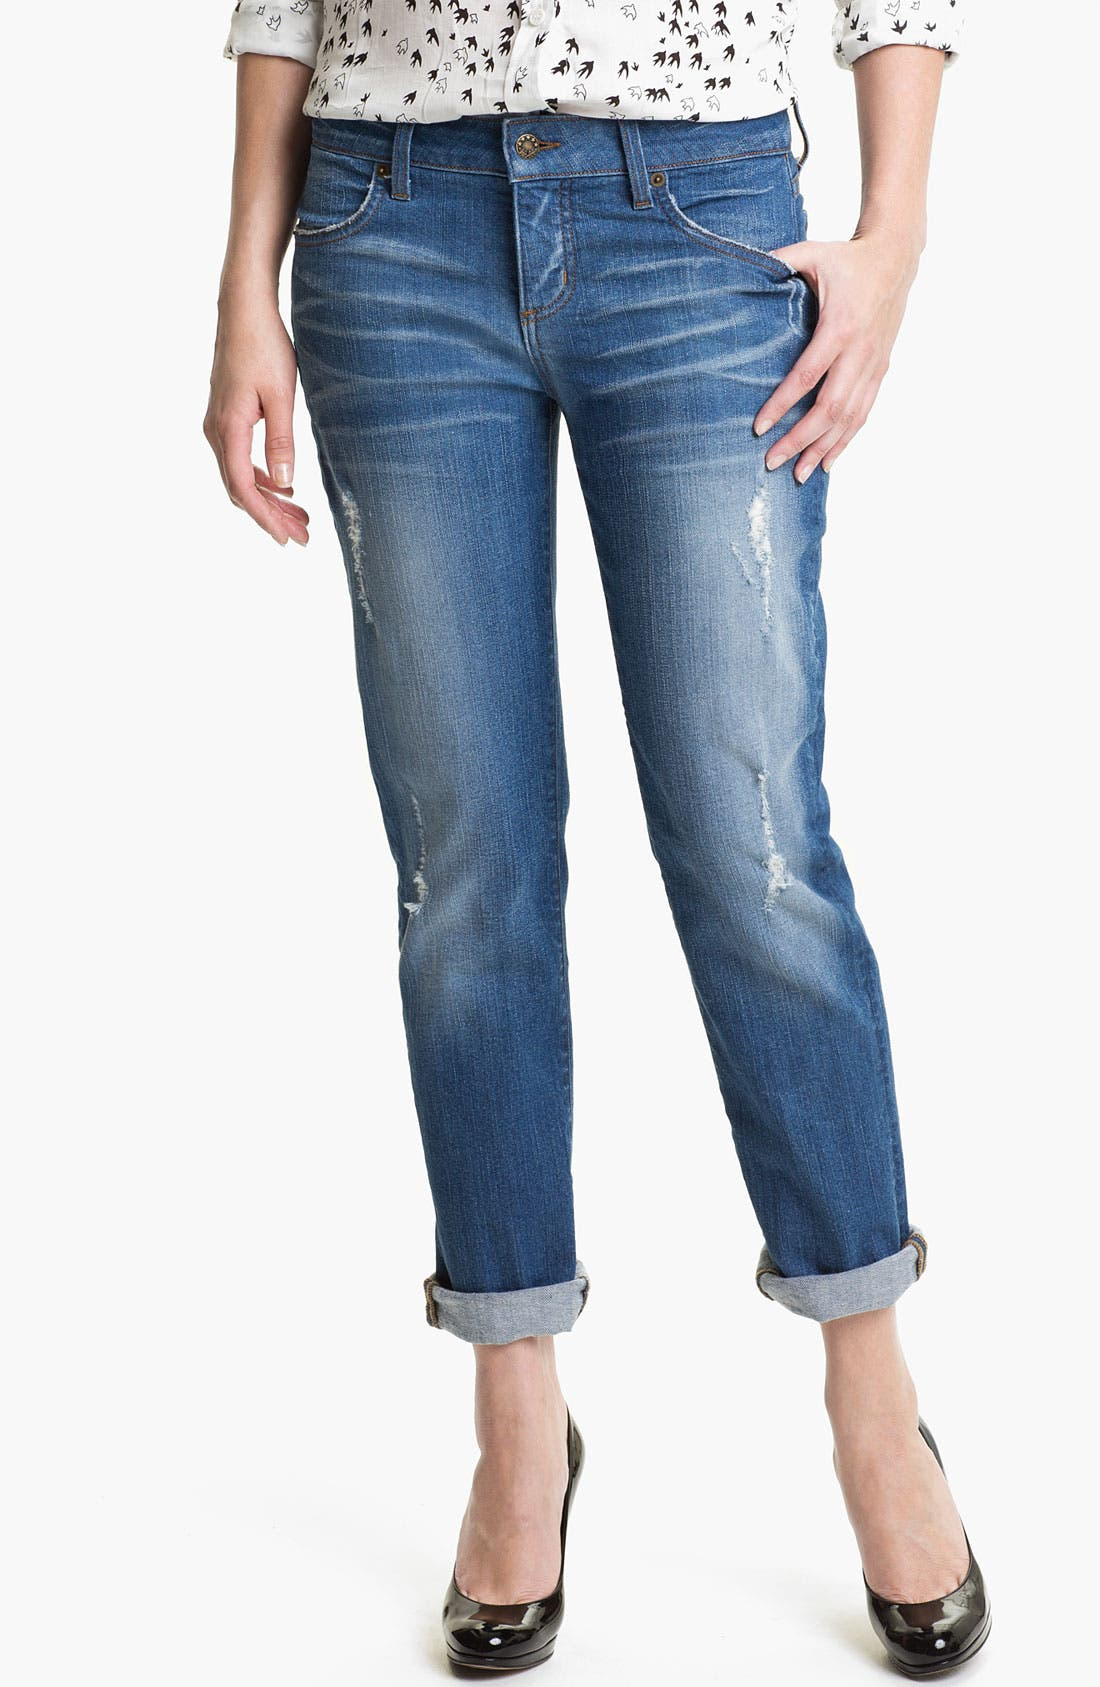 Alternate Image 1 Selected - Blue Essence Boyfriend Jeans (Worn Destroyed) (Nordstrom Exclusive)